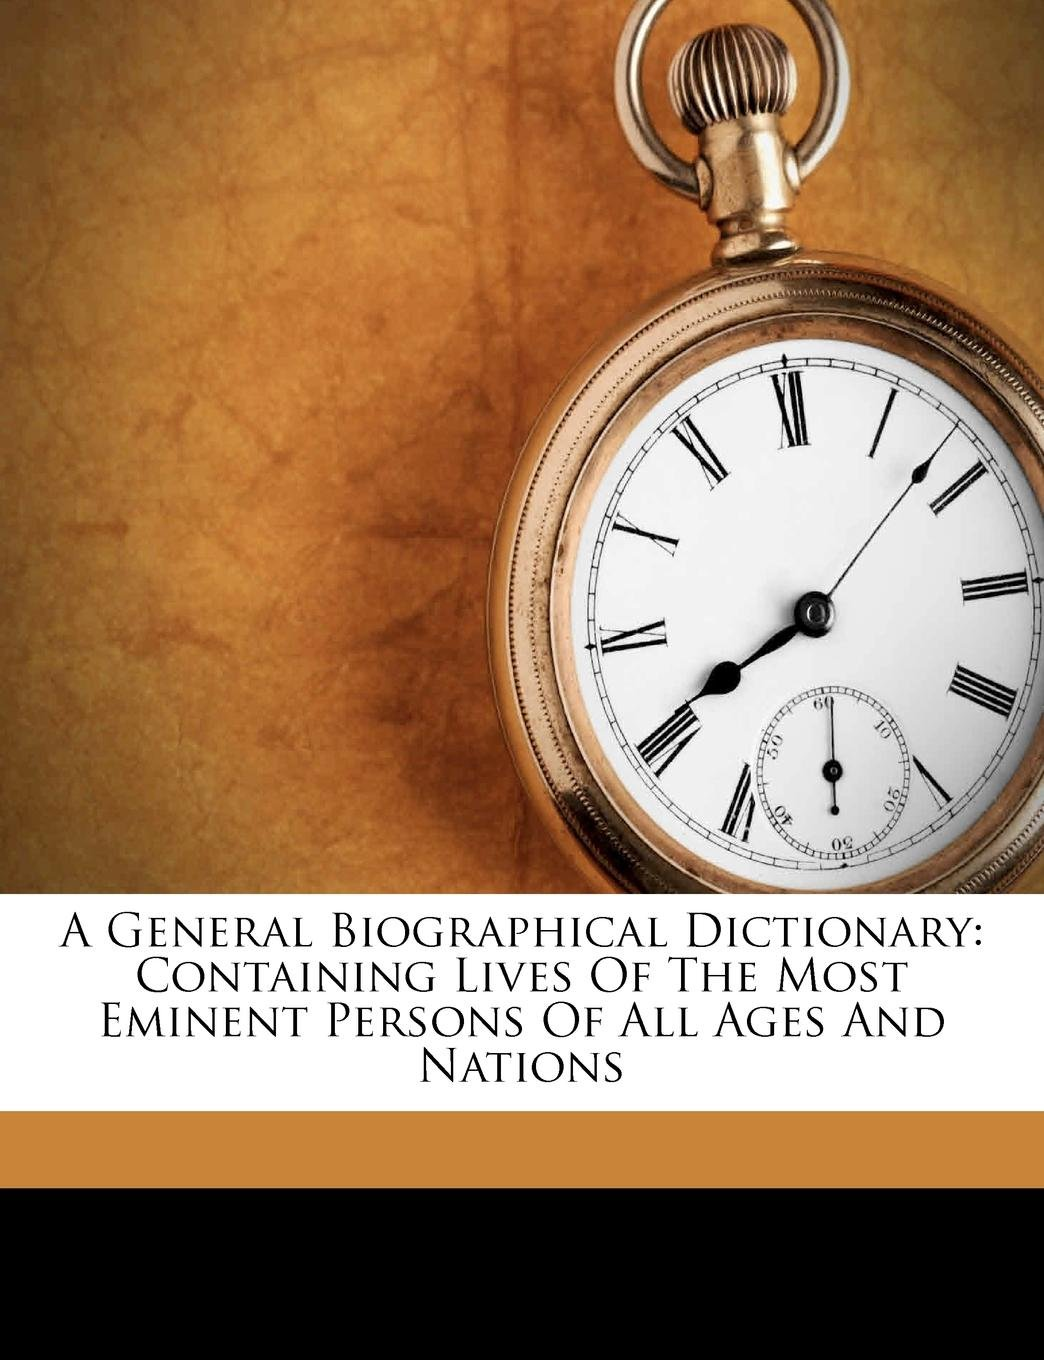 Download A General Biographical Dictionary: Containing Lives of the Most Eminent Persons of All Ages and Nations pdf